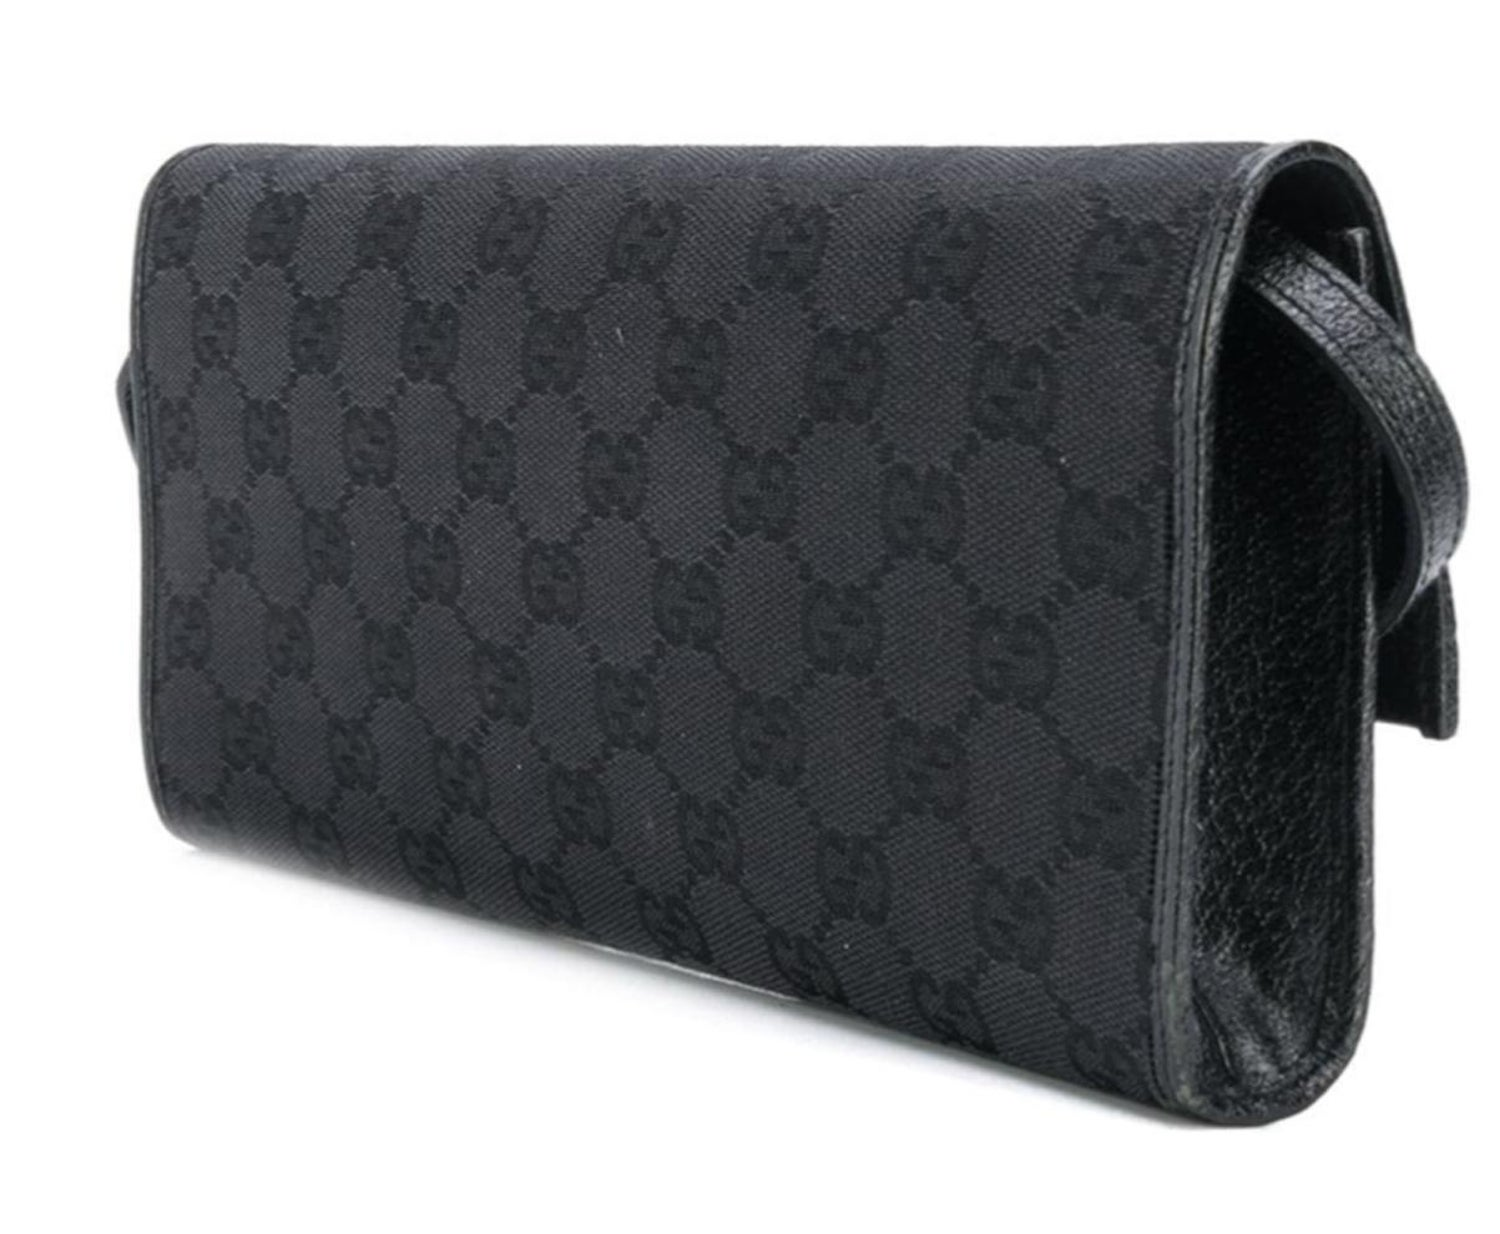 0ef1106c2599 Gucci Black Canvas Bamboo Clutch Bag For Sale at 1stdibs